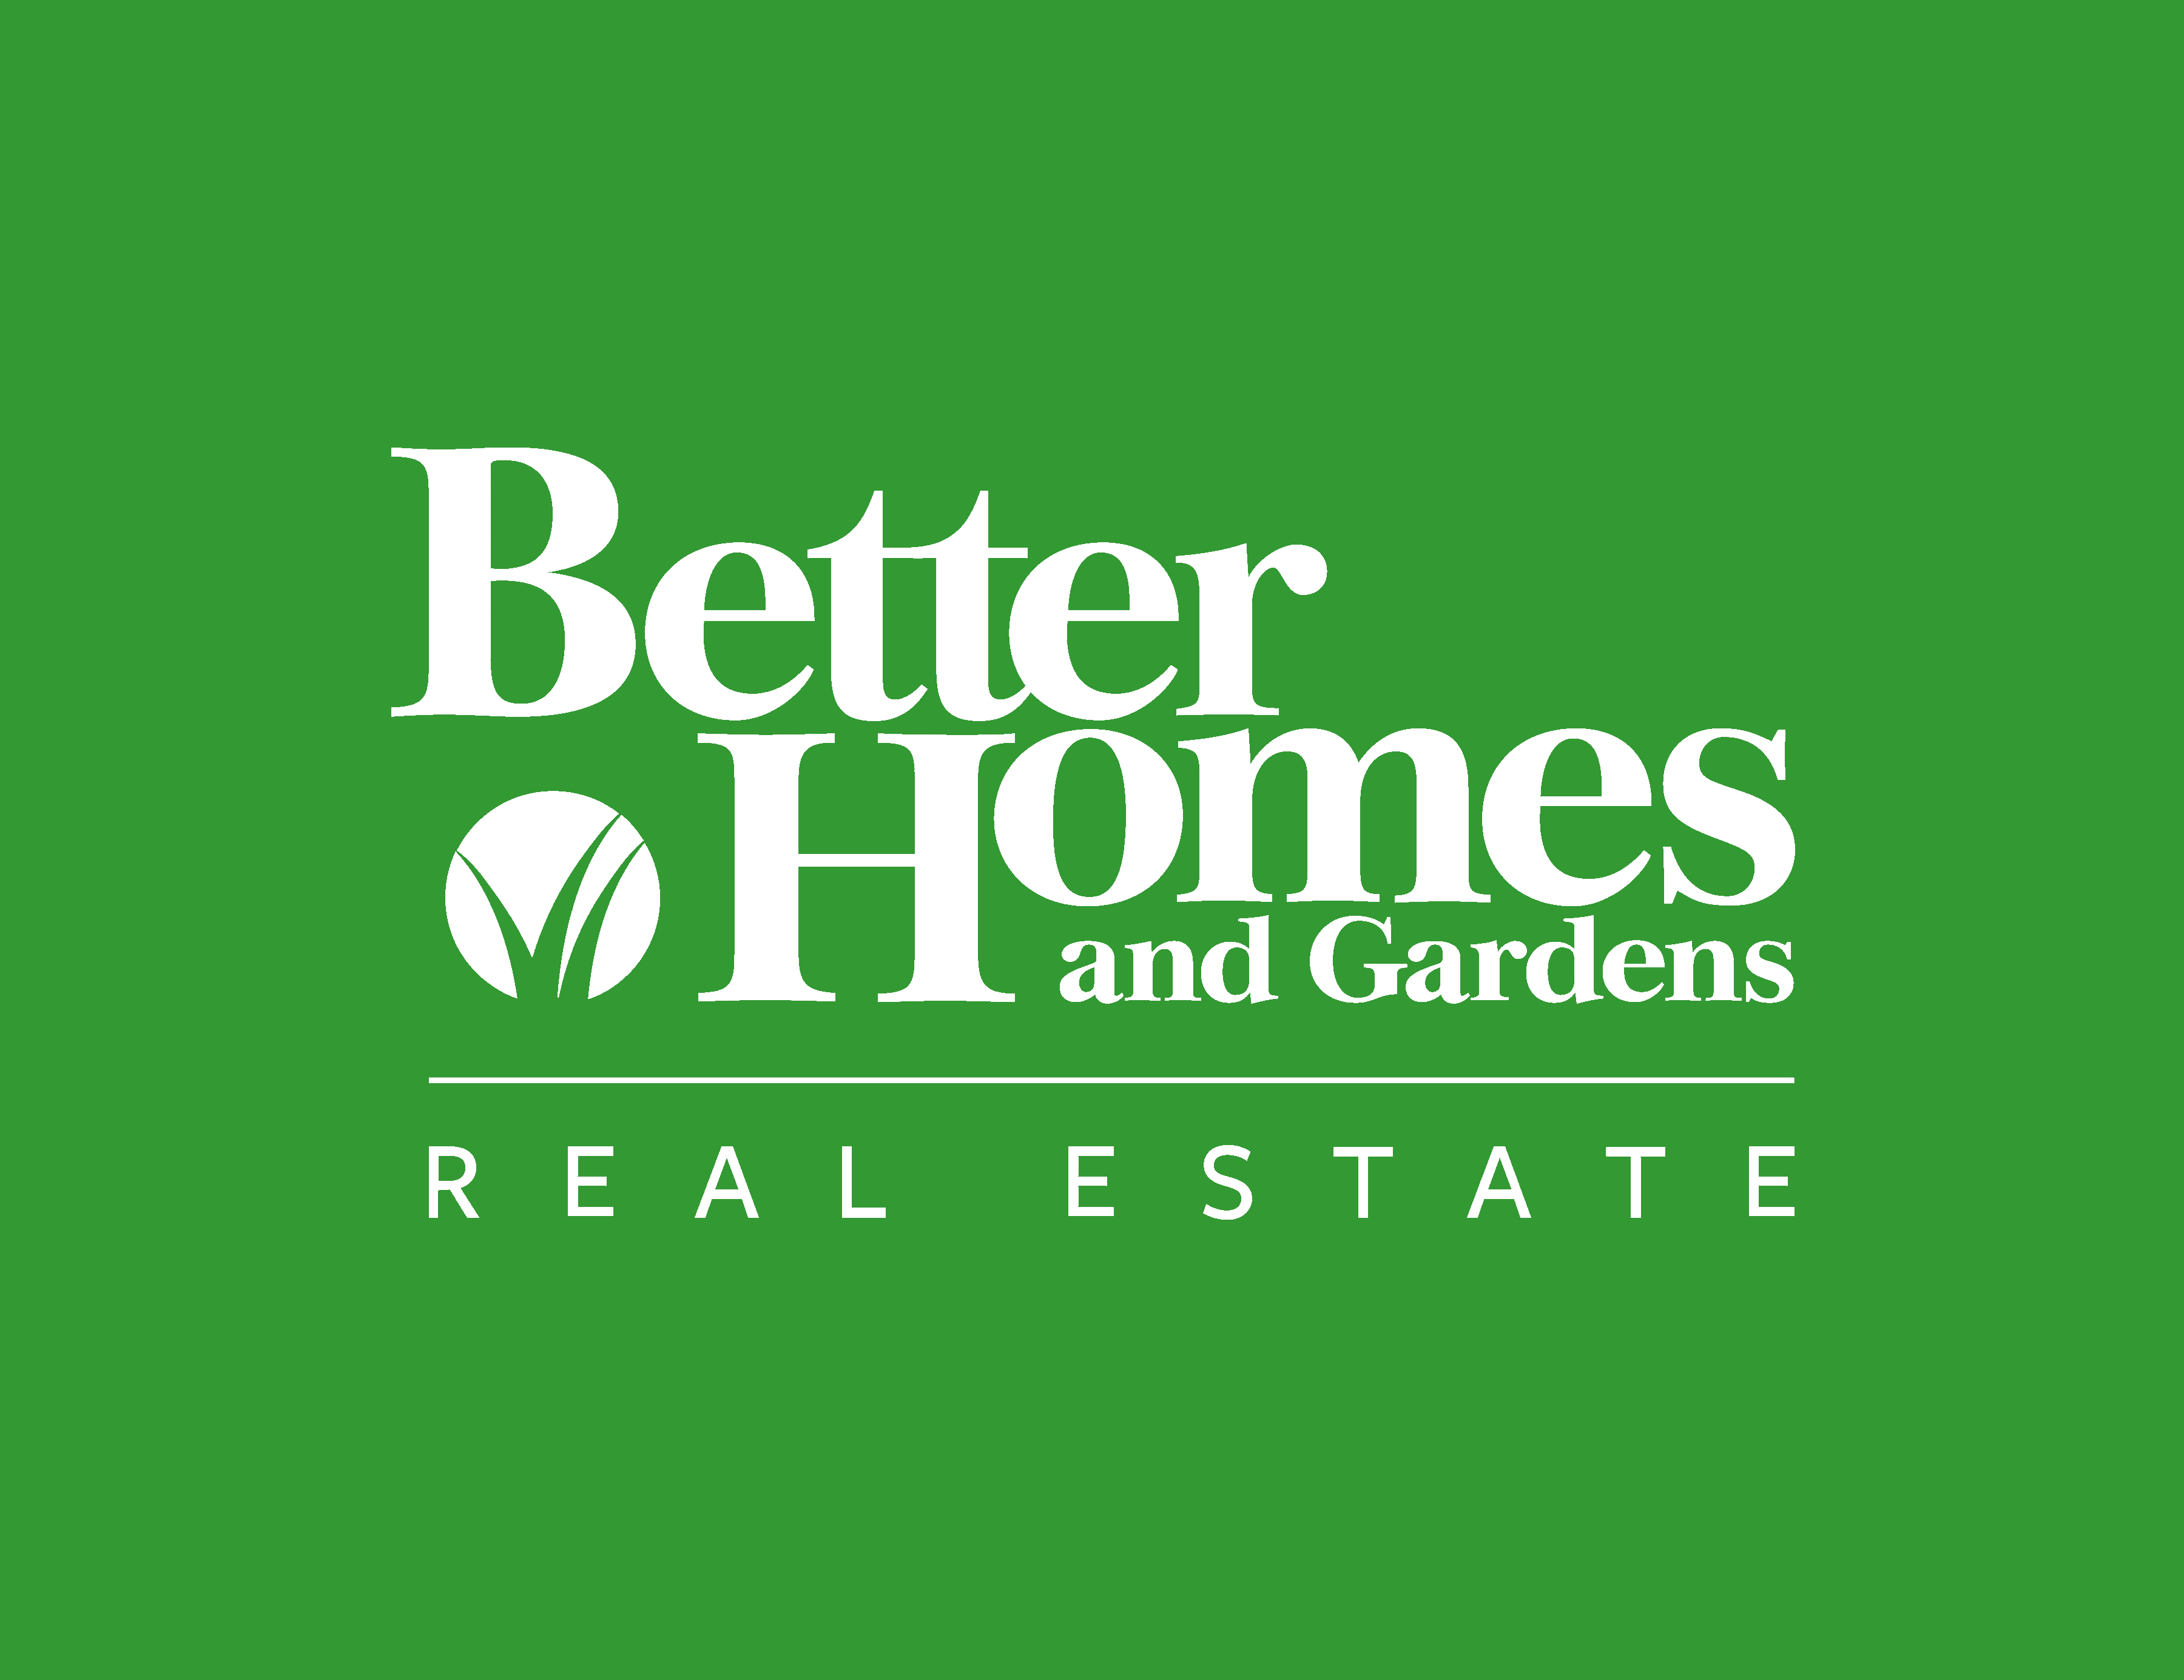 Better Homes And Gardens Logo Real Estate Company Grass Symbol Custom Design